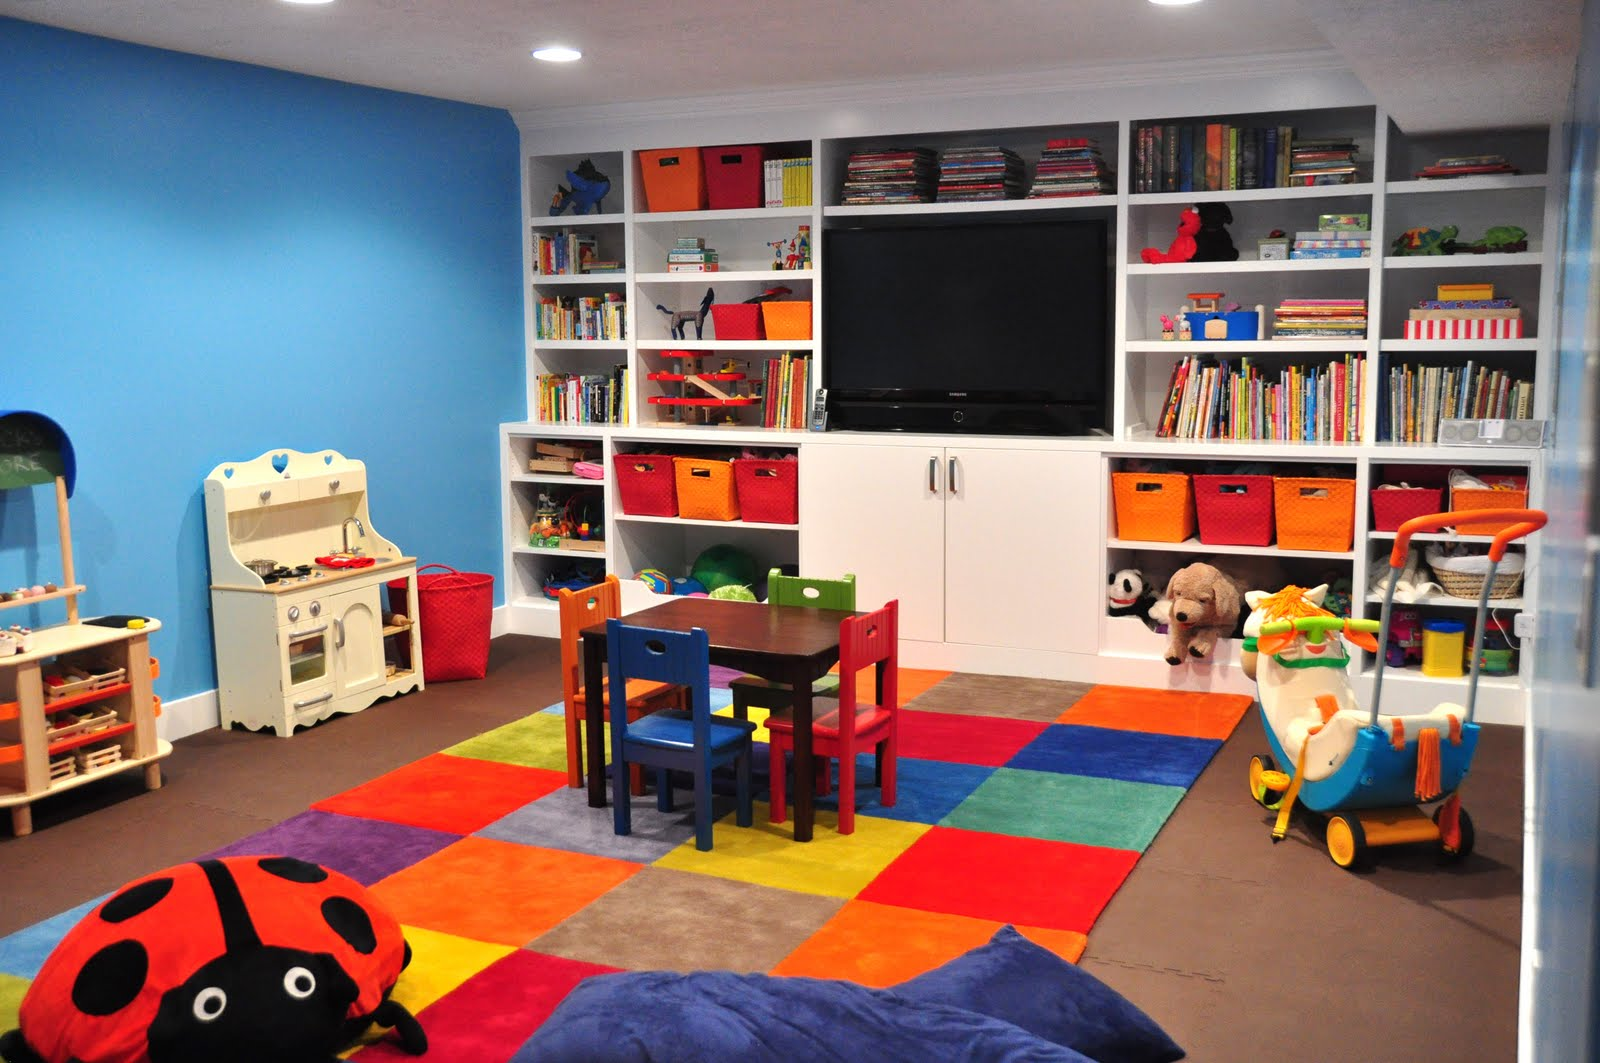 patchwork-rug-of-bright-multicolored-squares-built-in-storage-and-flatscreen-TV.jpg